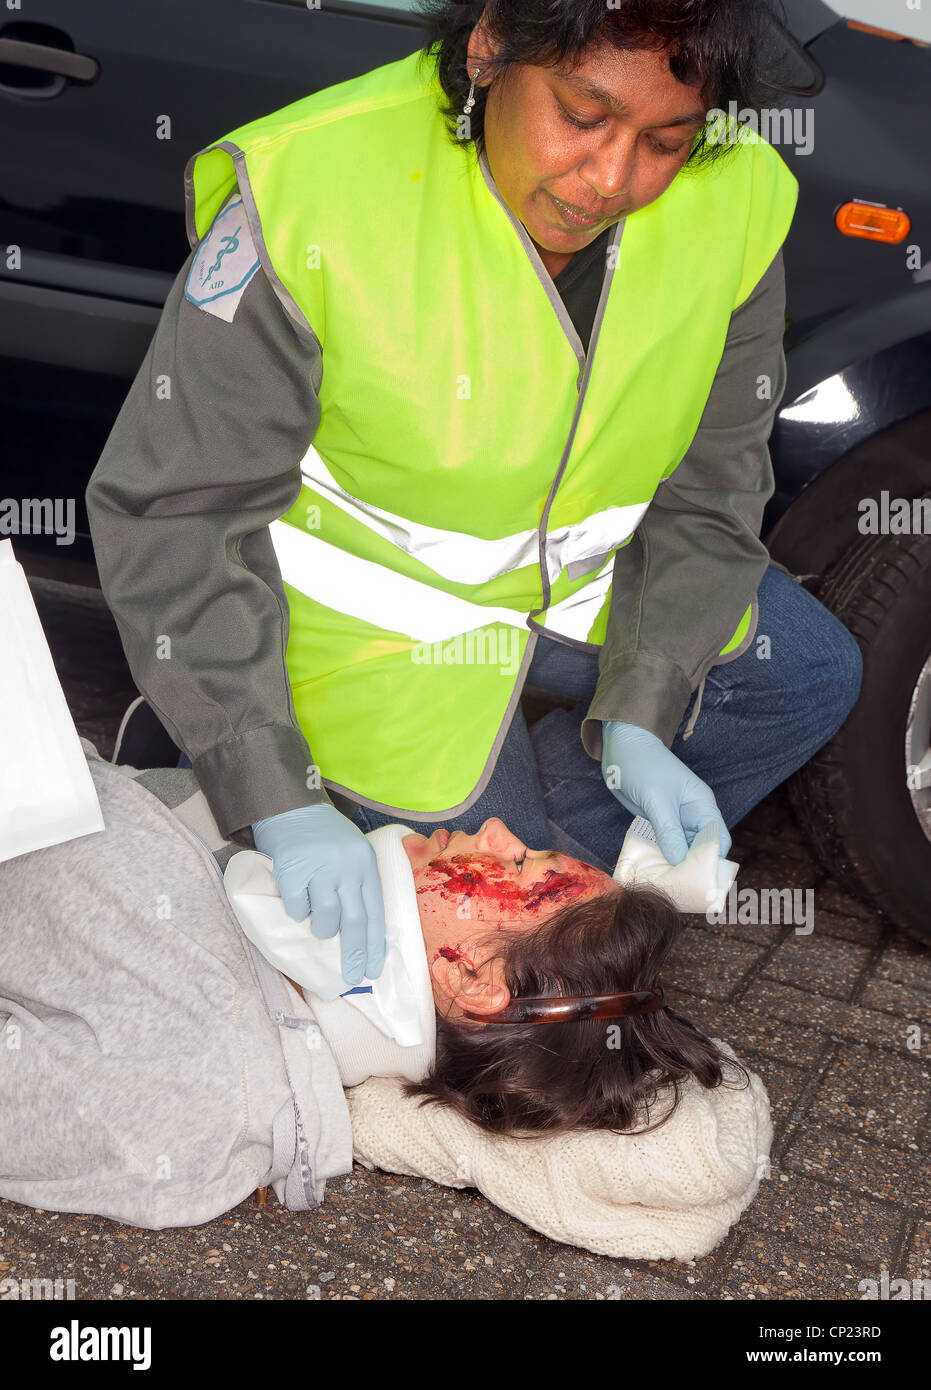 Female car crash victim with whiplash neck brace (the sleeve badges were replaced by a non existing logo) - Stock Image